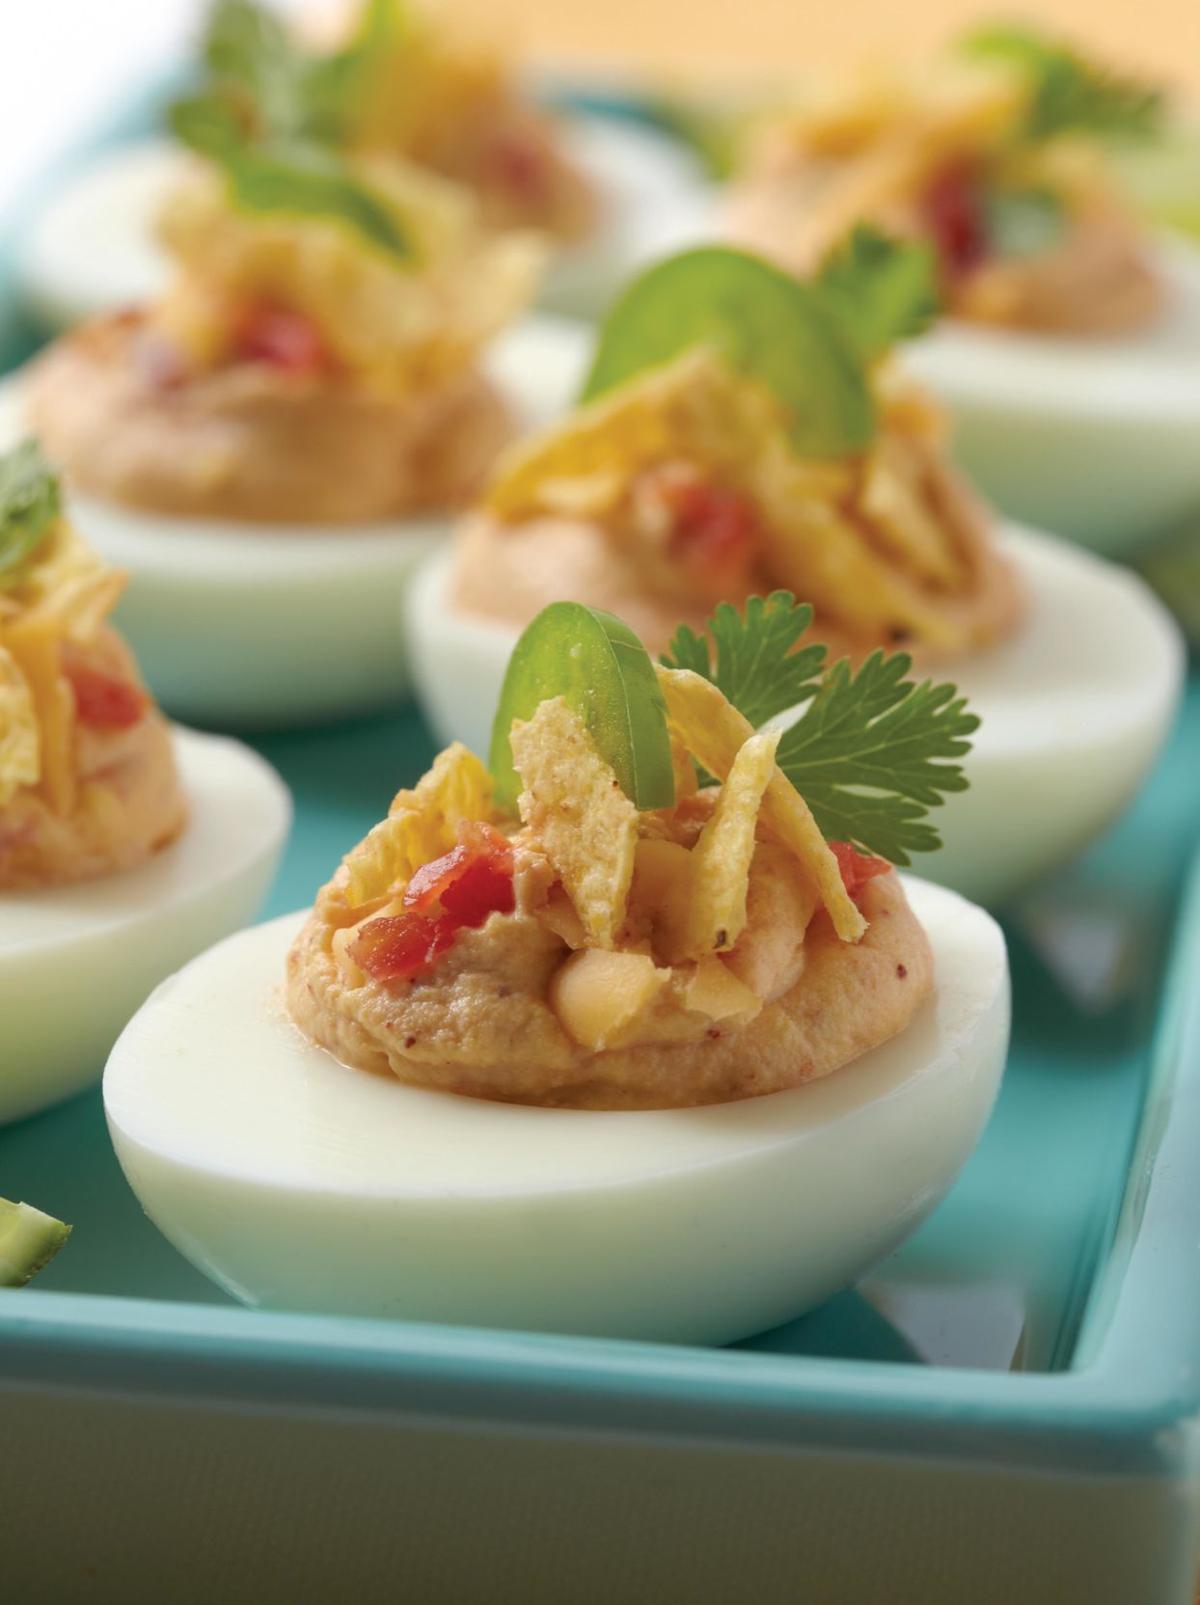 Stephen Fries: Deviled eggs make a resurgence with new twists